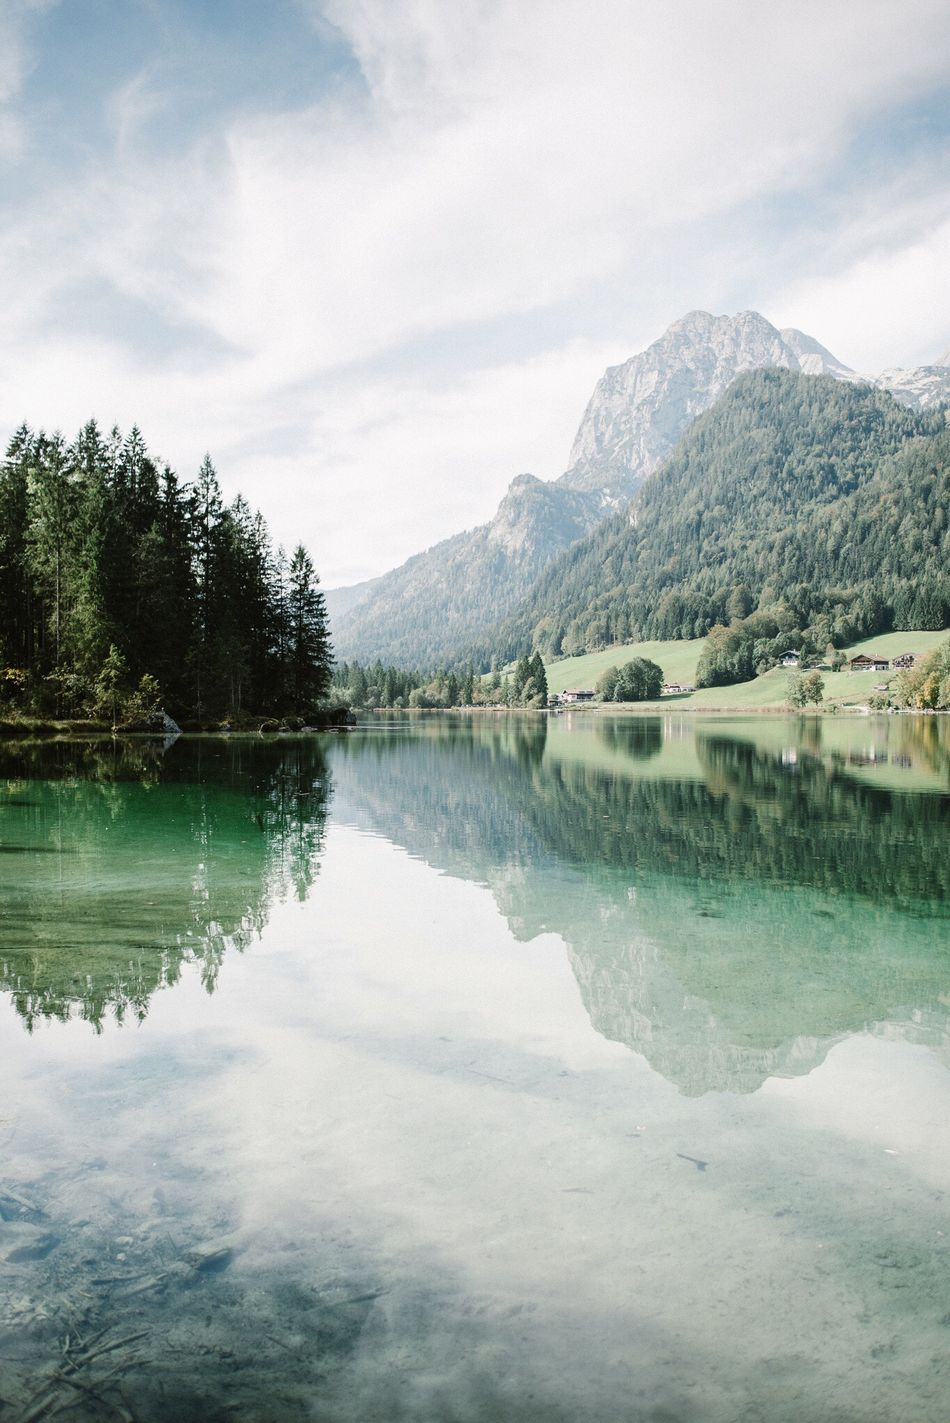 - Hintersee - Reflection Water Nature Sky Beauty In Nature Tree Idyllic Mountain No People Outdoors Clouds Nature Place Of Worship EyeEm Best Edits Moody Sky EyeEm Best Shots Travel Destinations Mood Lake Hintersee Bavaria Bayern Landscape Beauty EyeEm Nature Lover